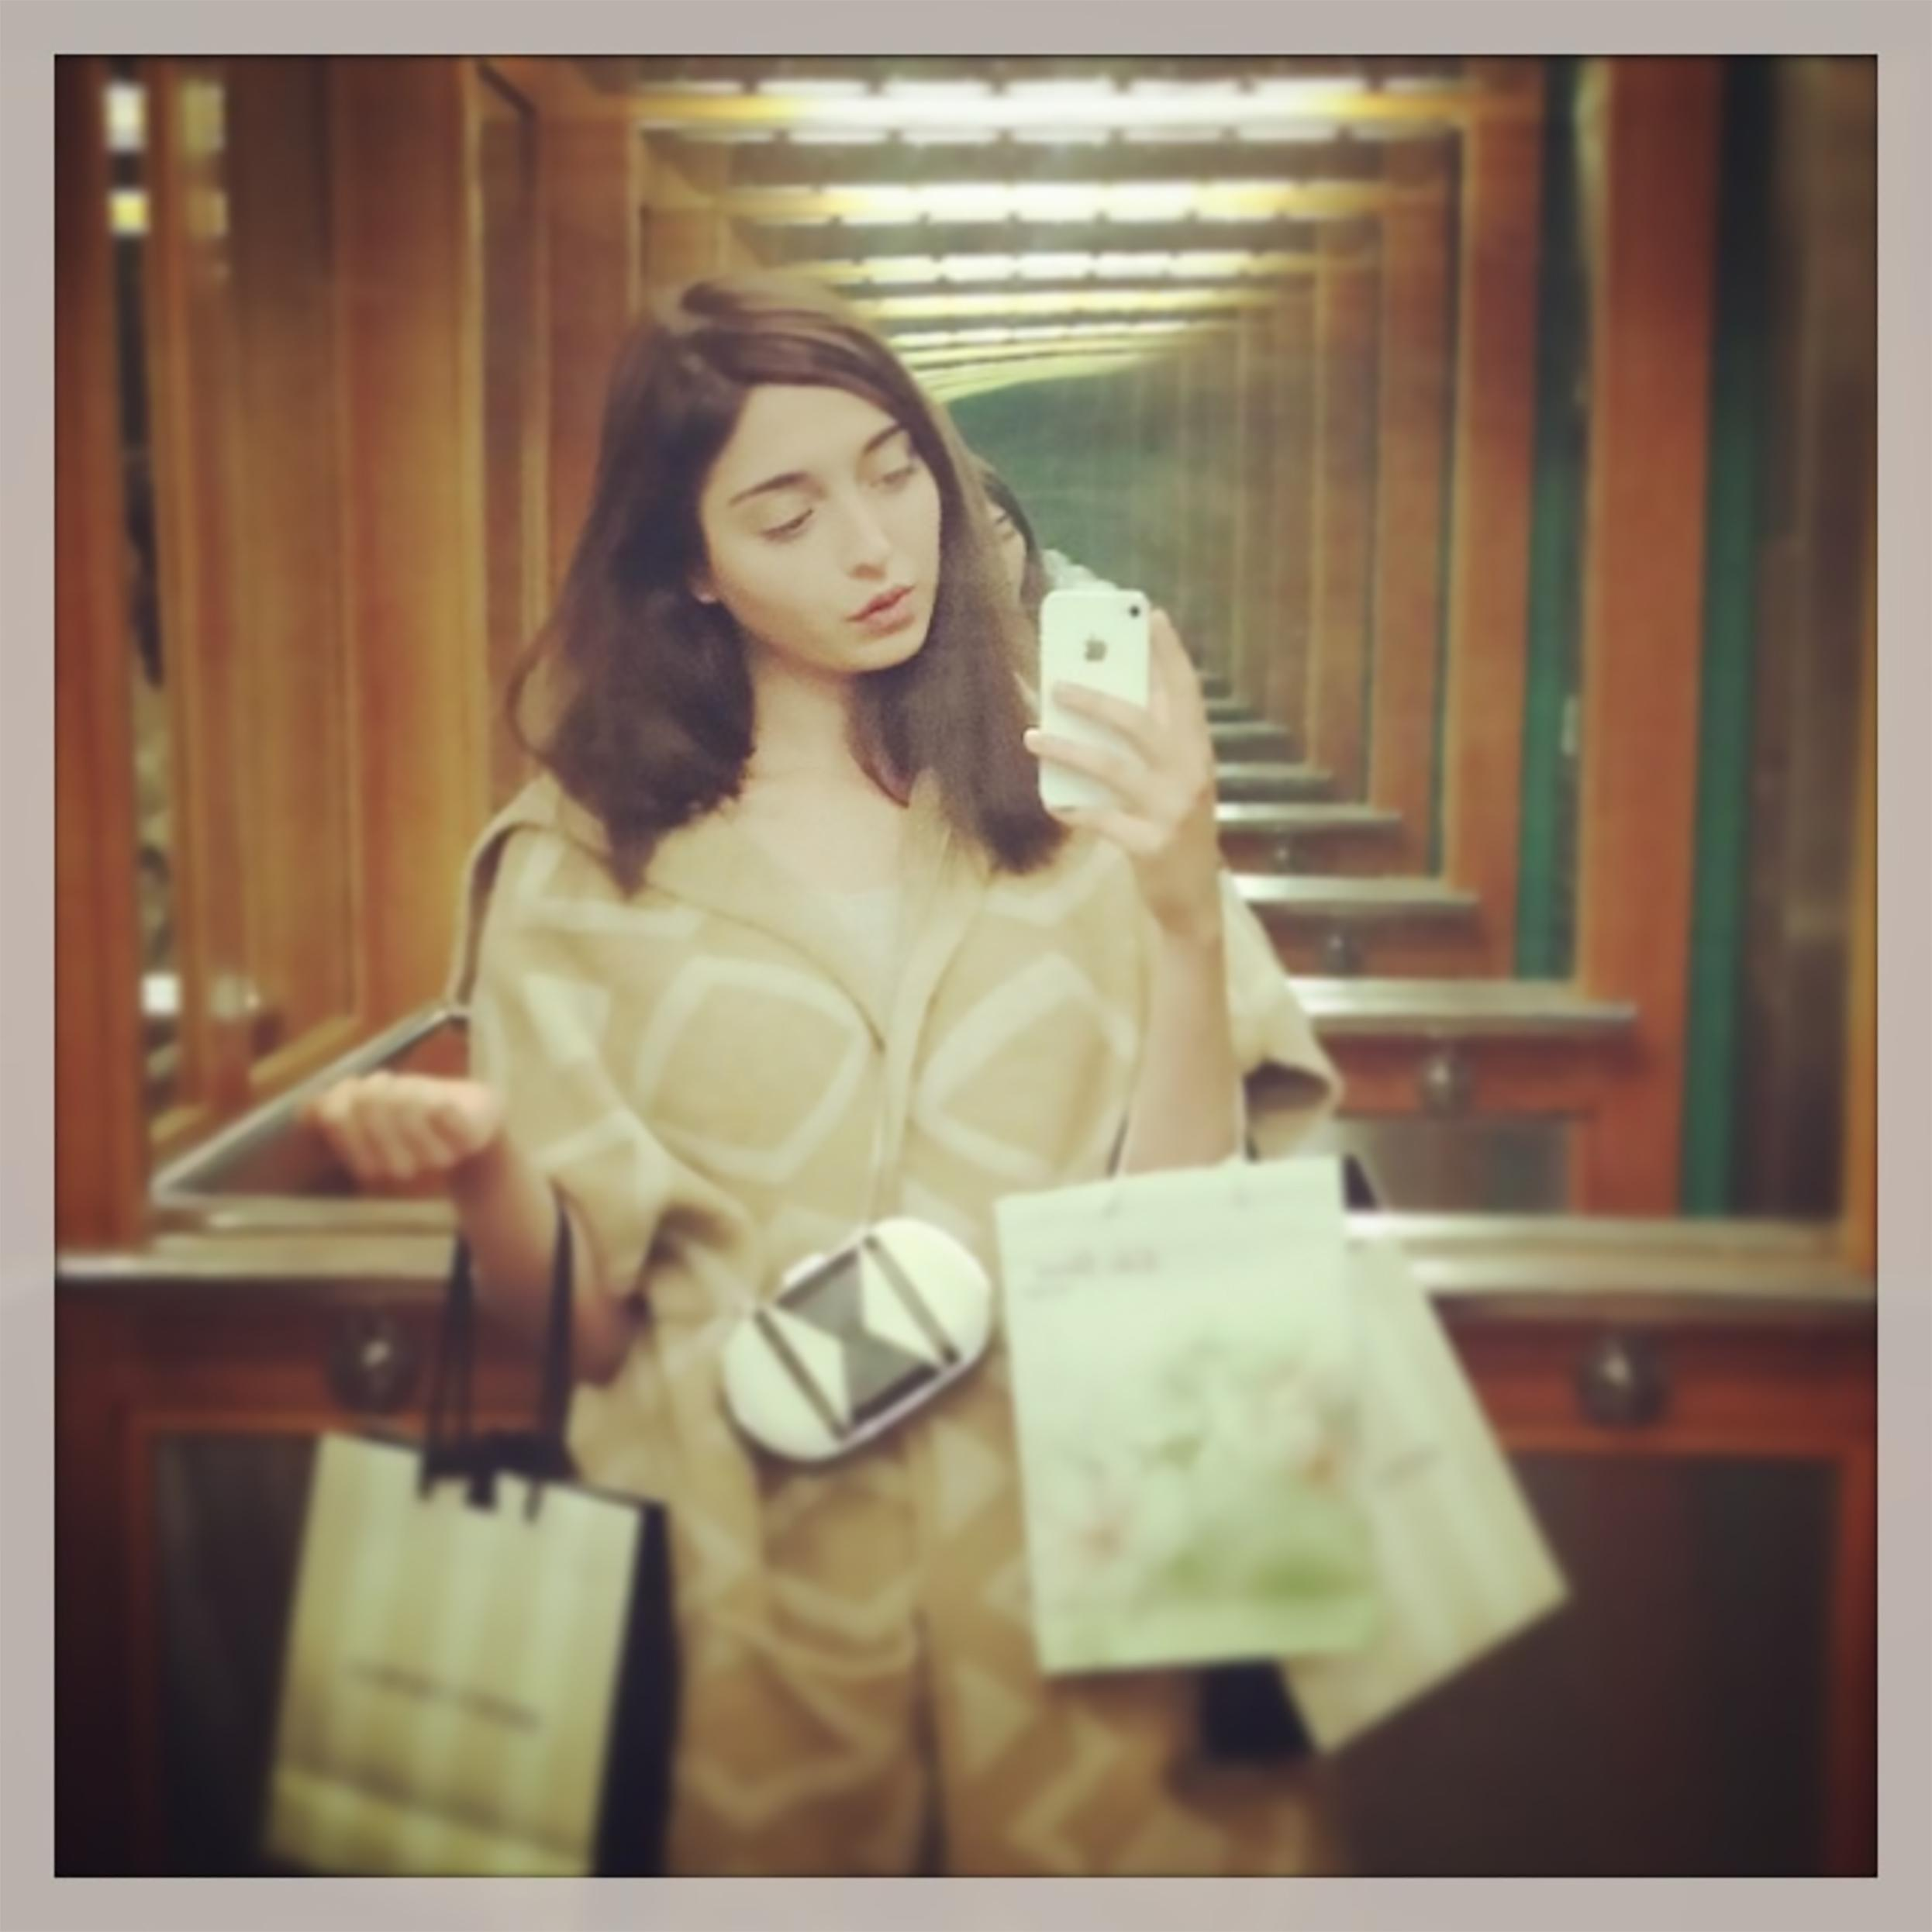 A brunette light-skinned woman takes a mirror selfie on her iPhone carrying shopping bags in the crooks of her arms.